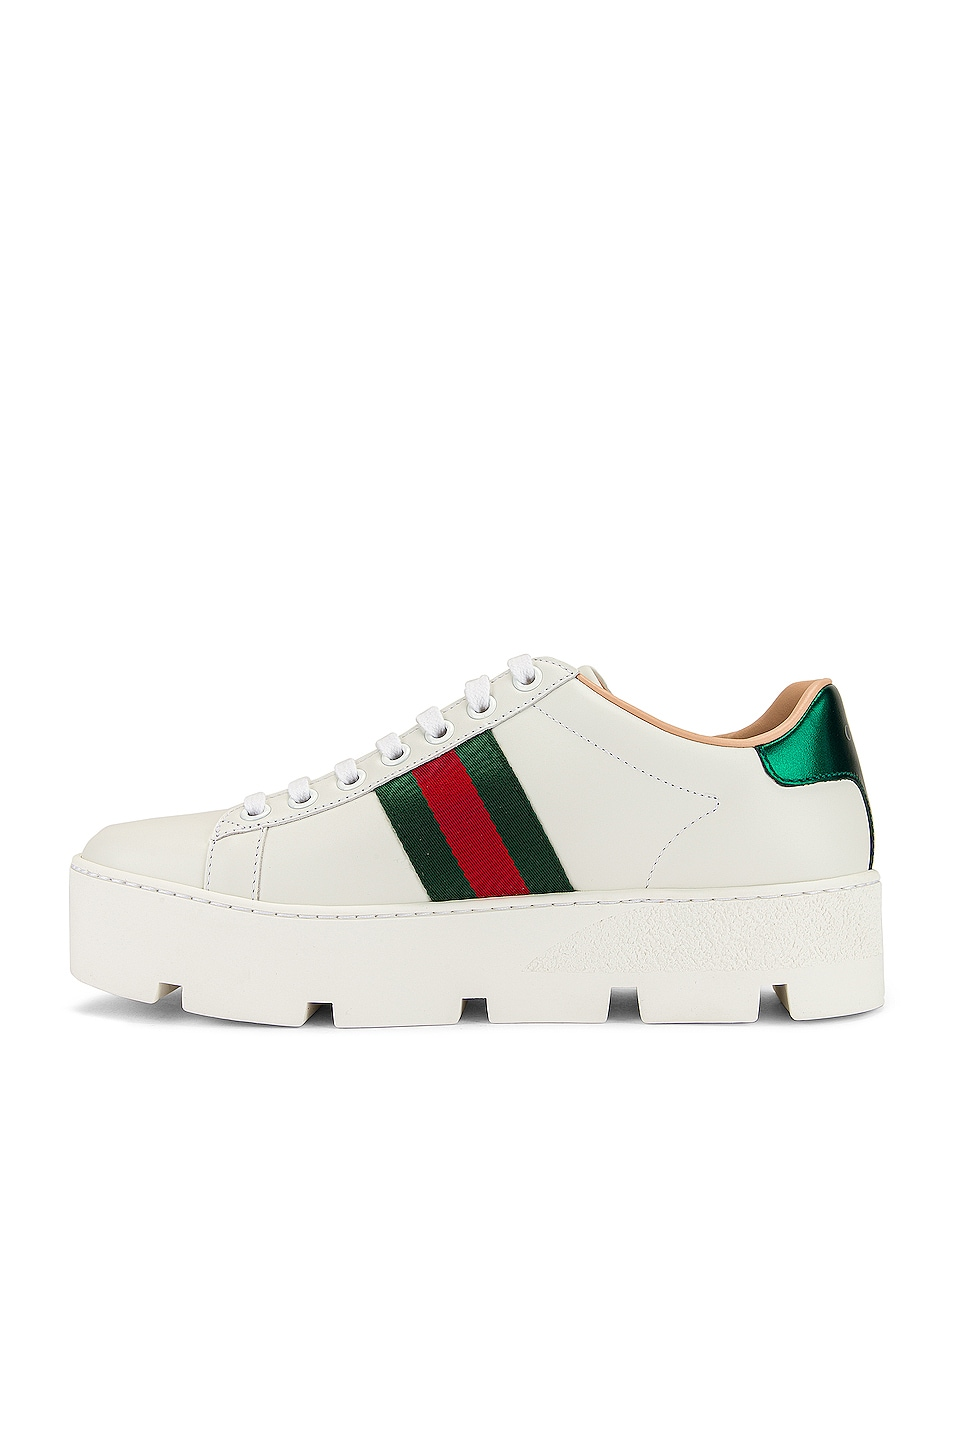 Image 5 of Gucci New Ace Platform Sneakers in White & Green & Red